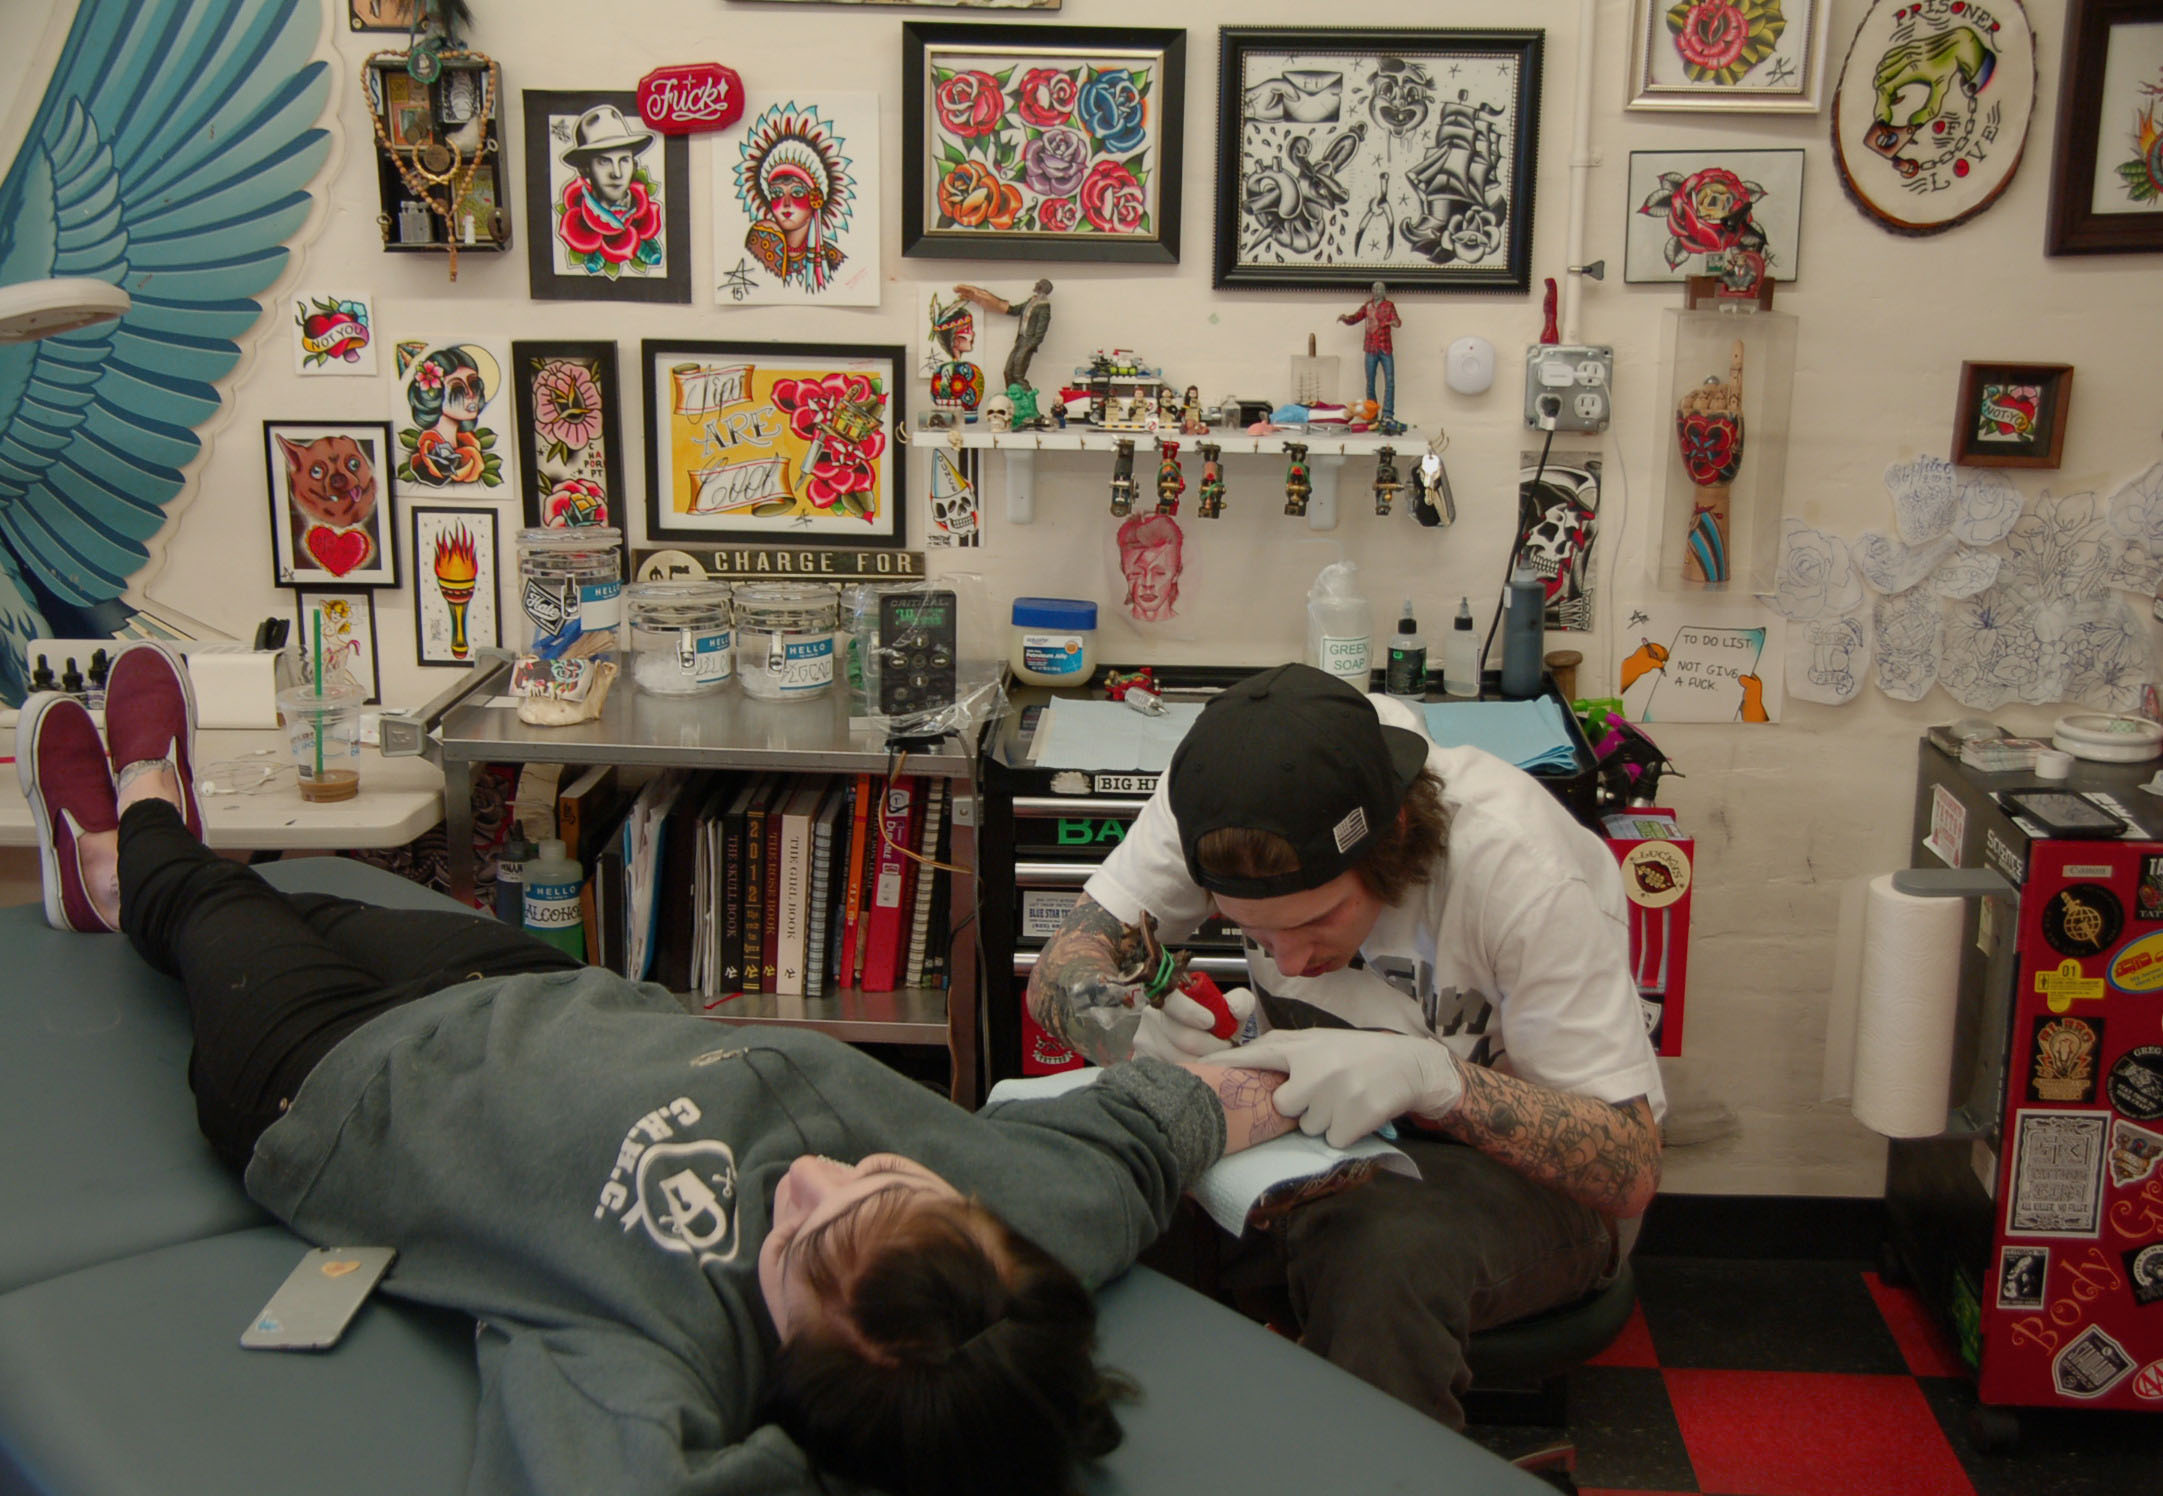 """Destany Swan was having Stewart tattoo a flower on her right arm on March 13, 2016. """"Anthony is super talented,"""" Swan said. """"I like his line work, we have a lot of similar interests in tattoos. So many of my friends' dads have been tattooed here. It's just an amazing place."""""""